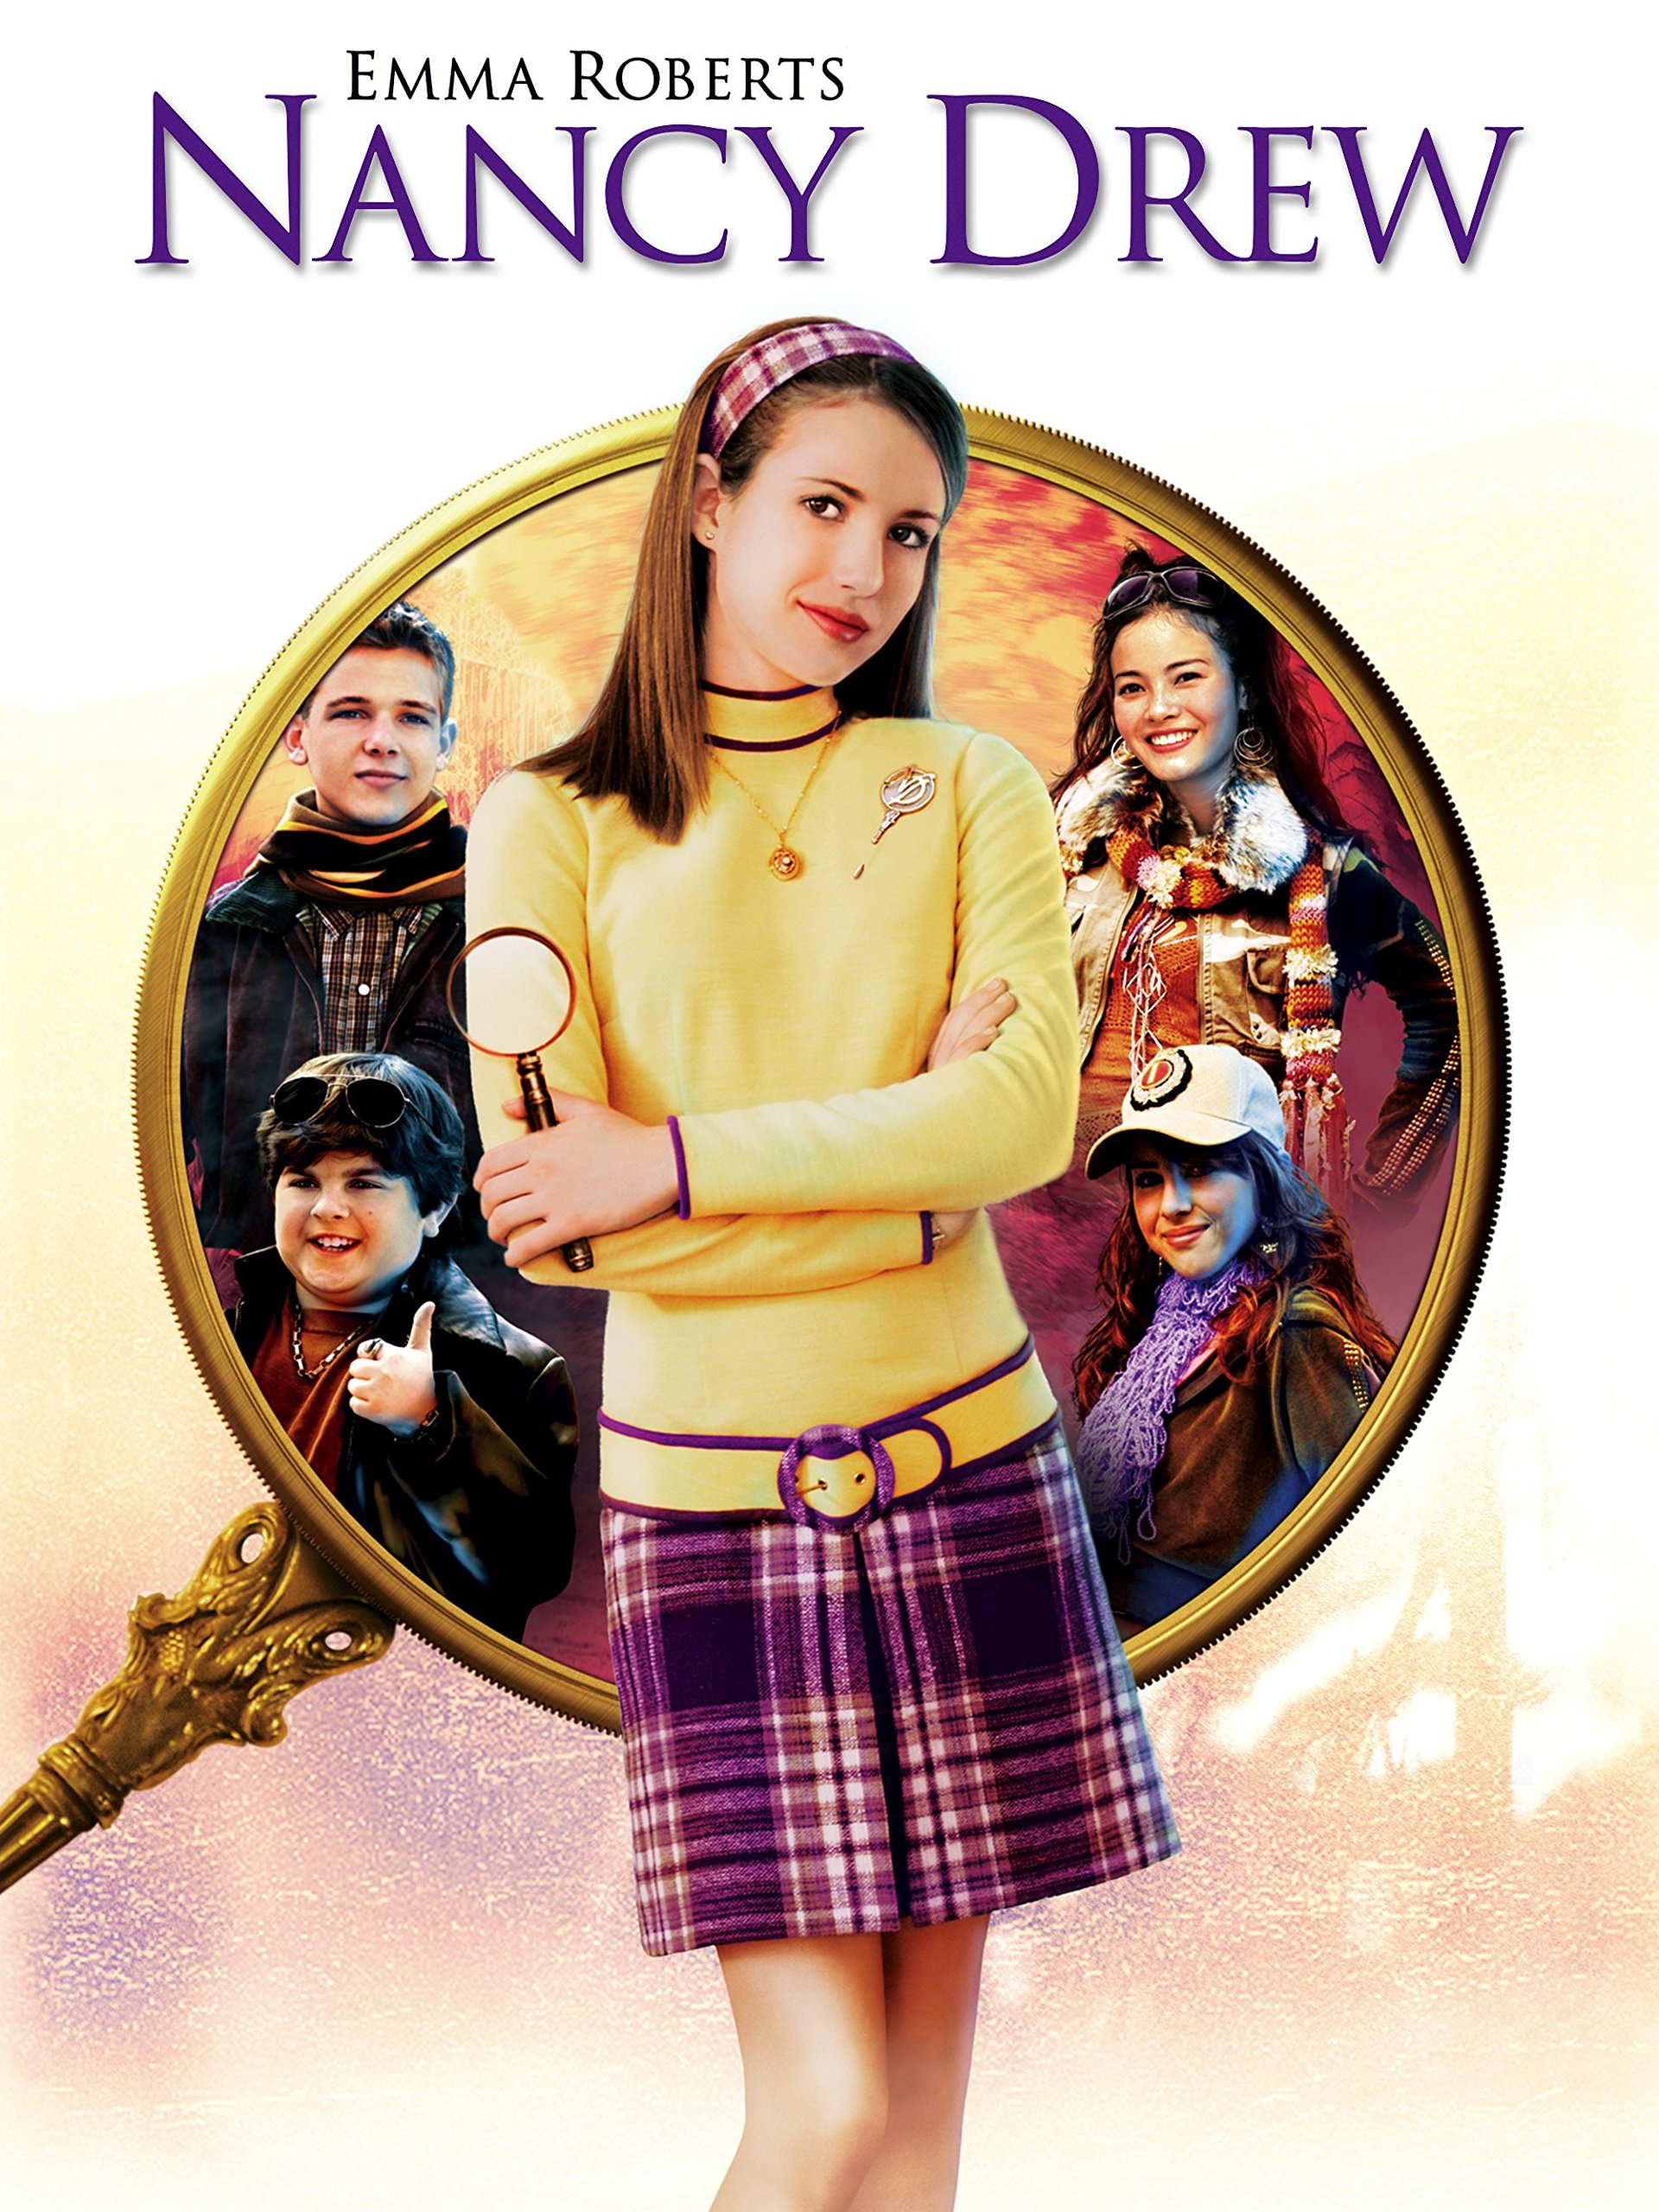 Nancy Drew movie starring Emma Roberts